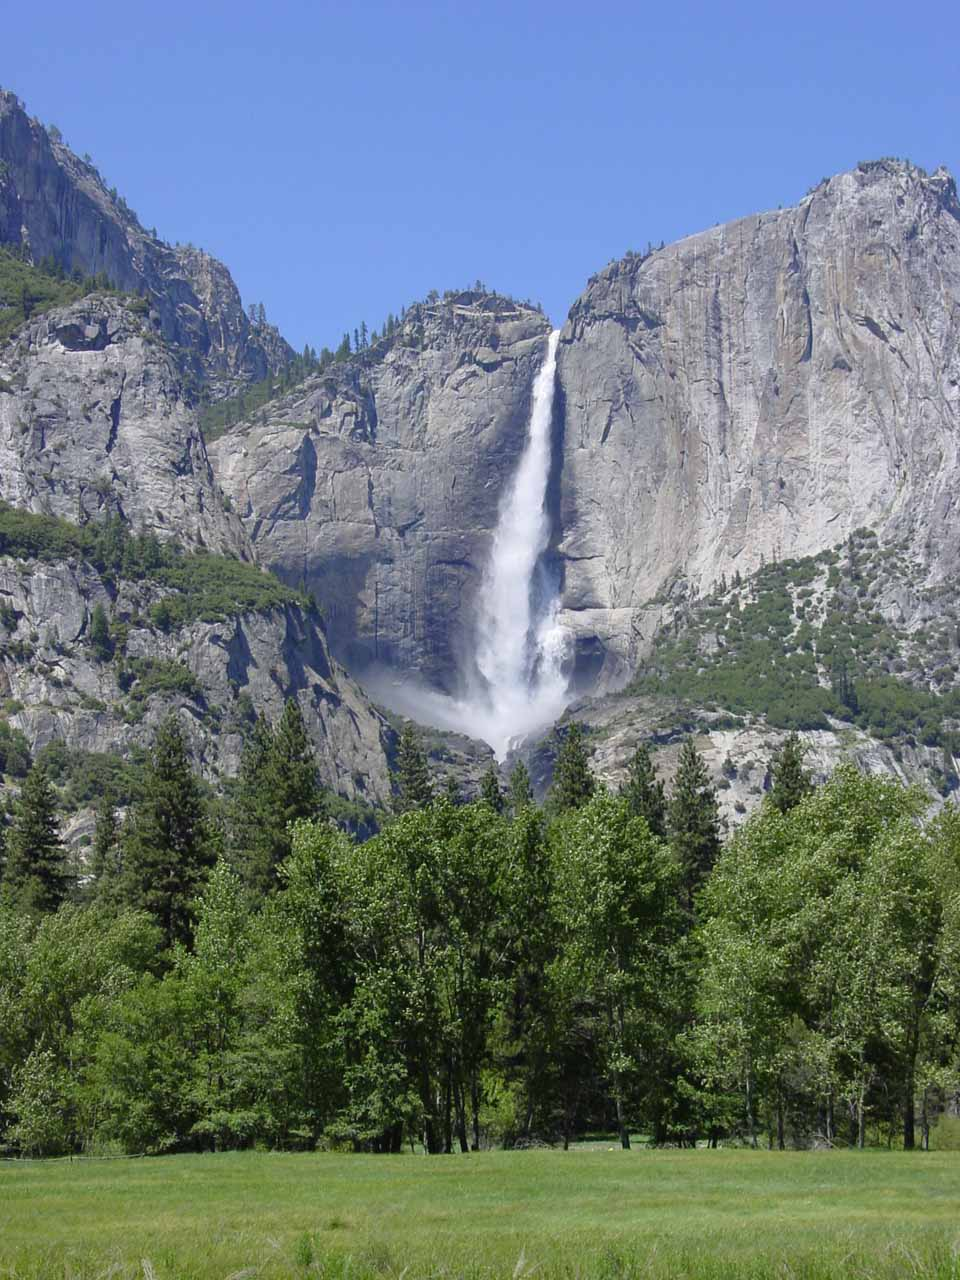 Upper Yosemite Falls seen from a meadow near signpost V19